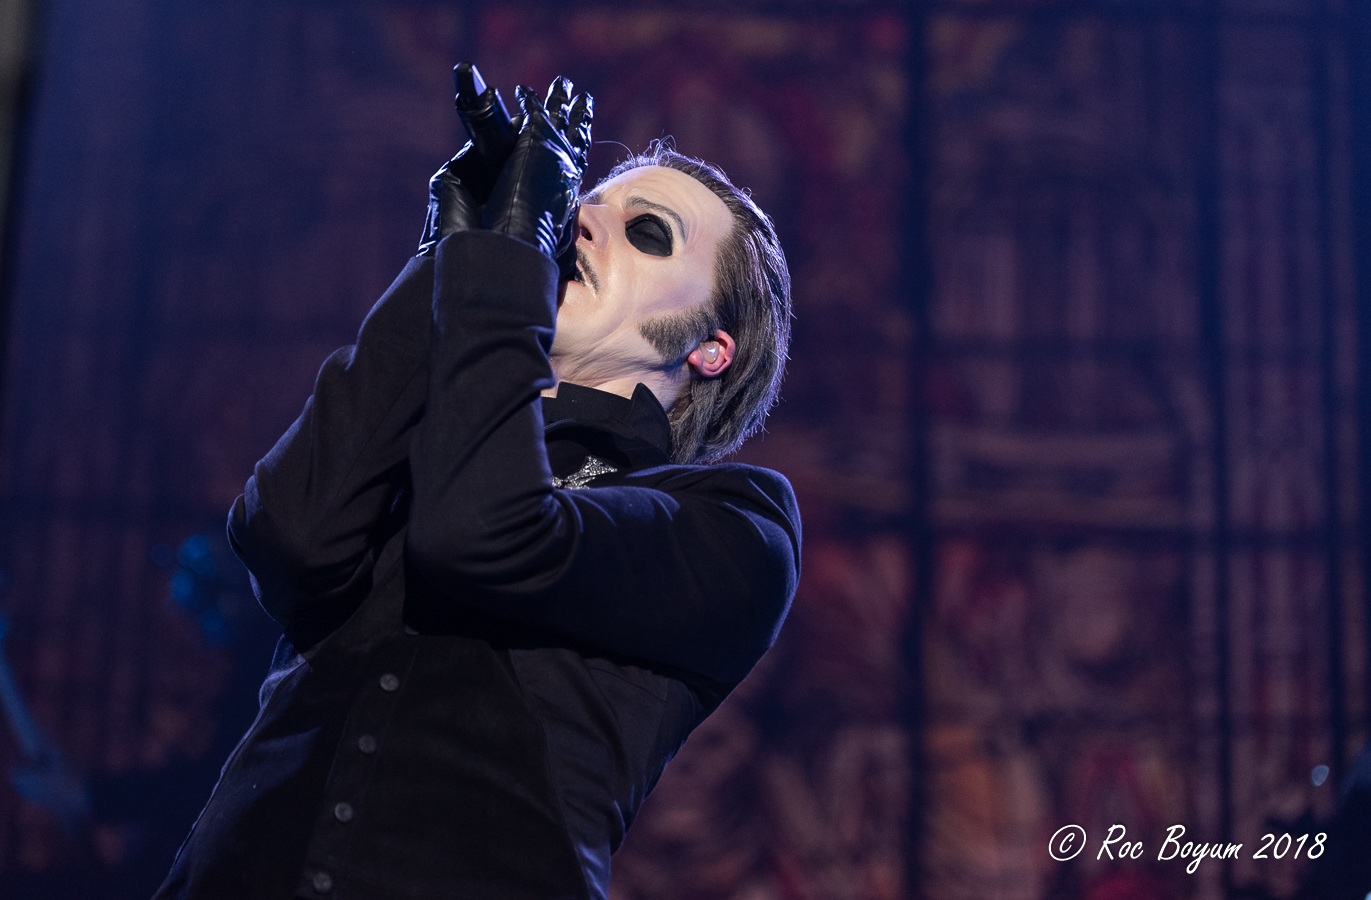 Ghost band Los Angeles Forum Concert Photography Concert Reviews